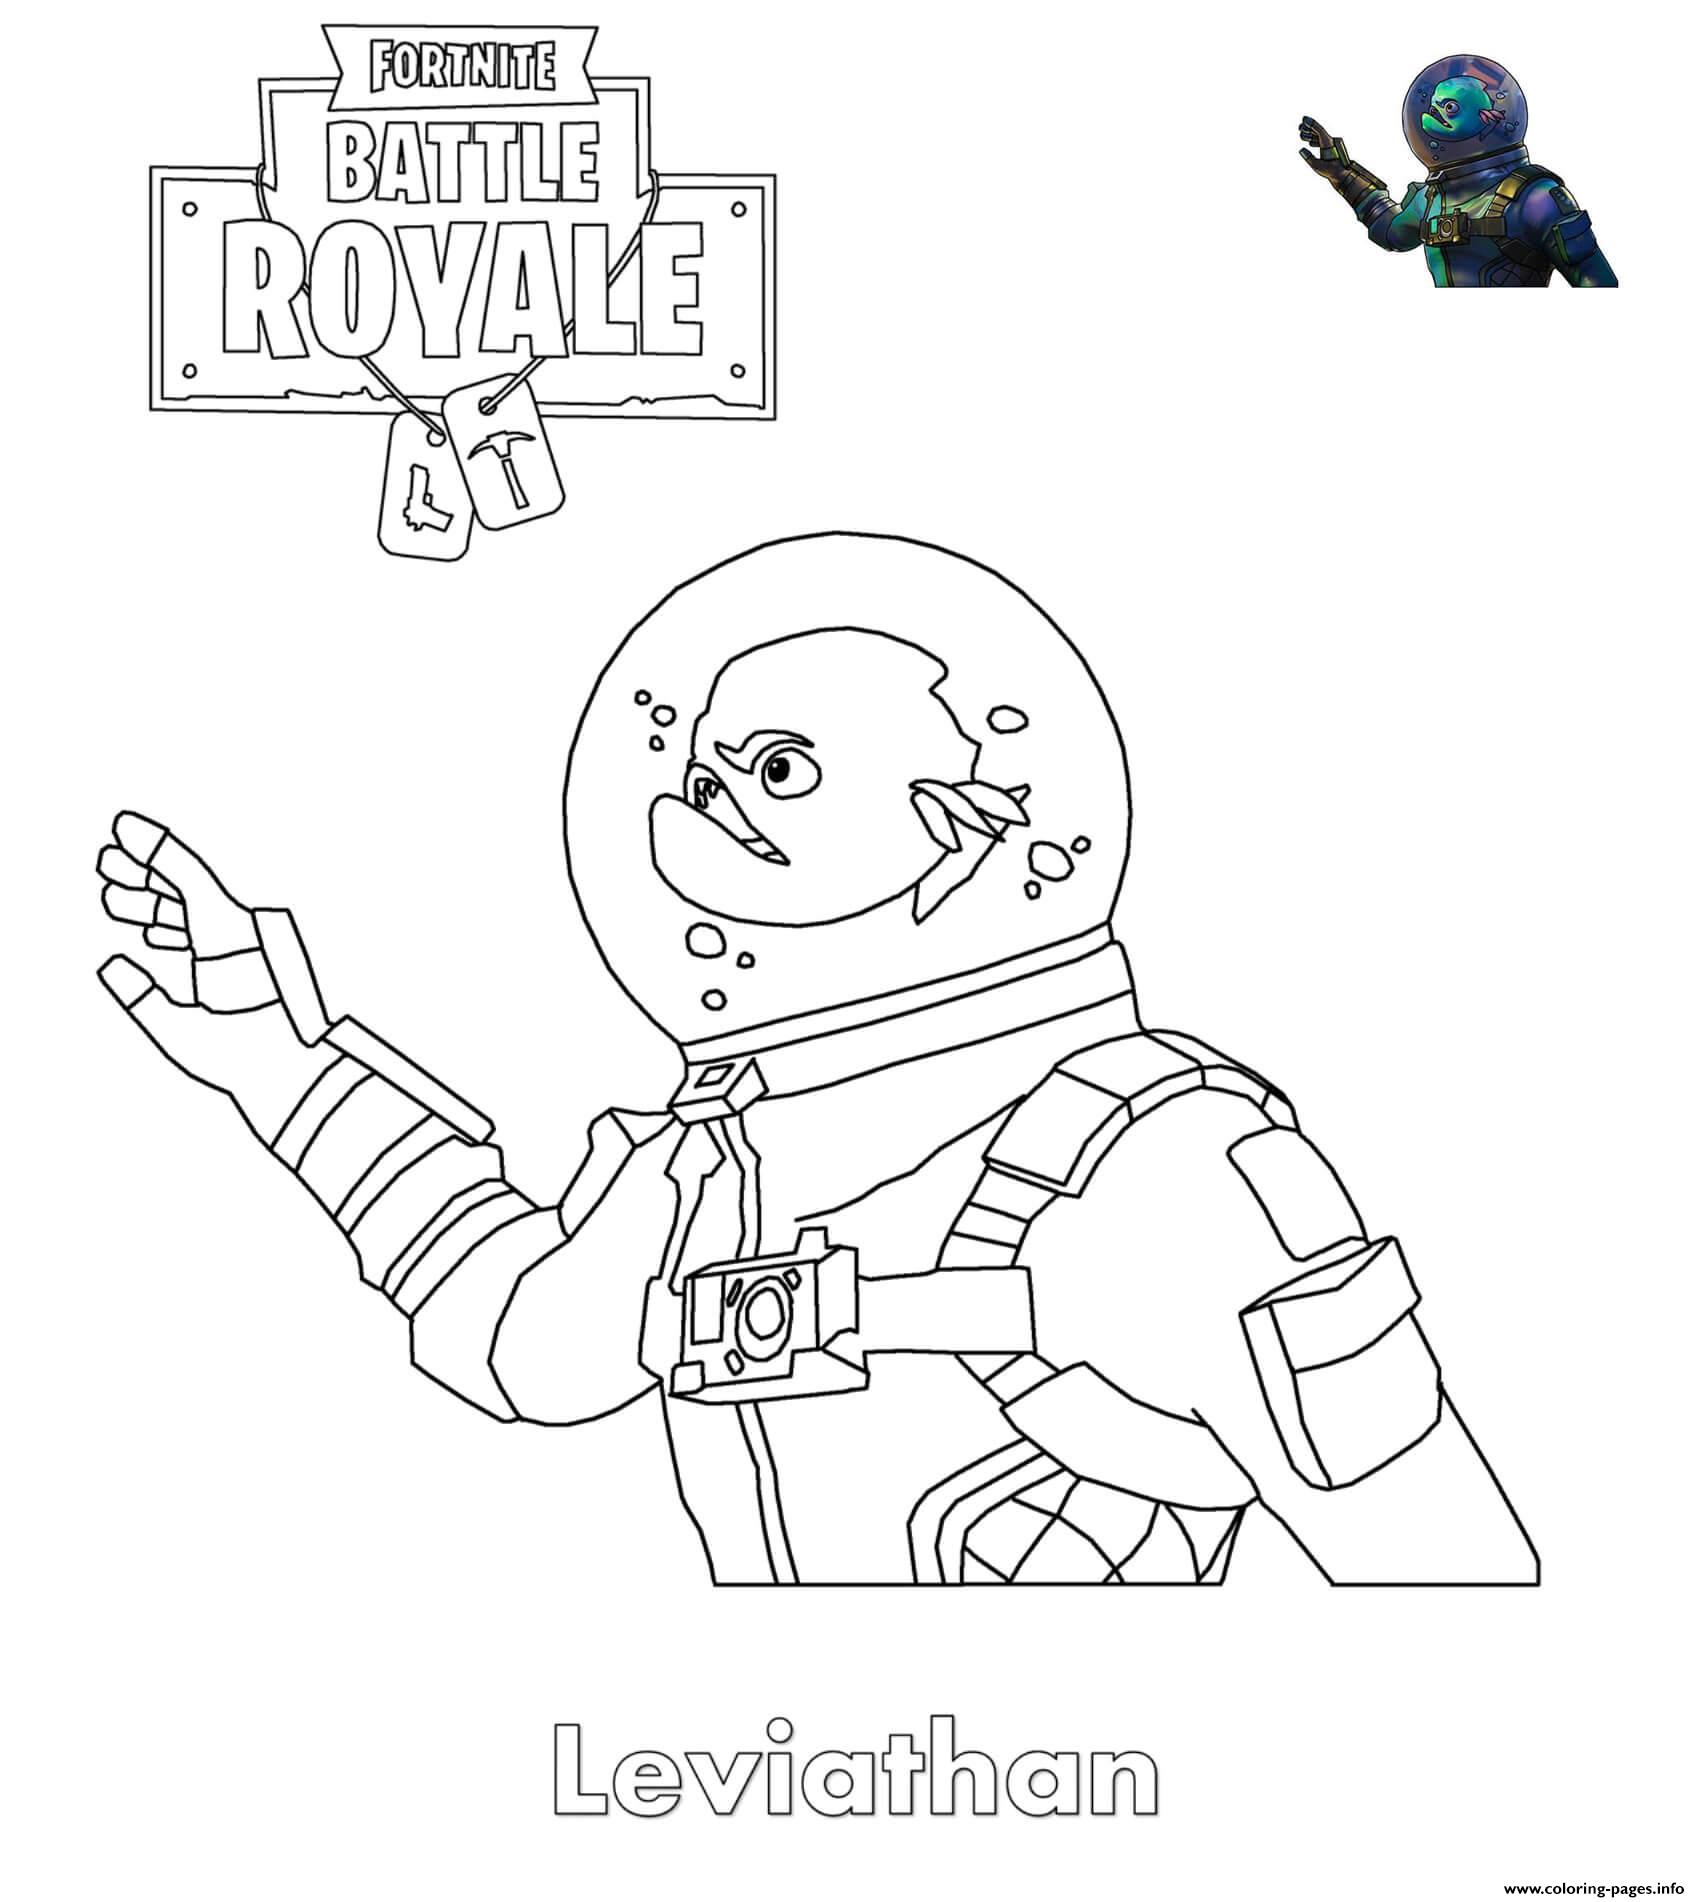 Fortnite Leviathan Skin Coloring Pages Printable